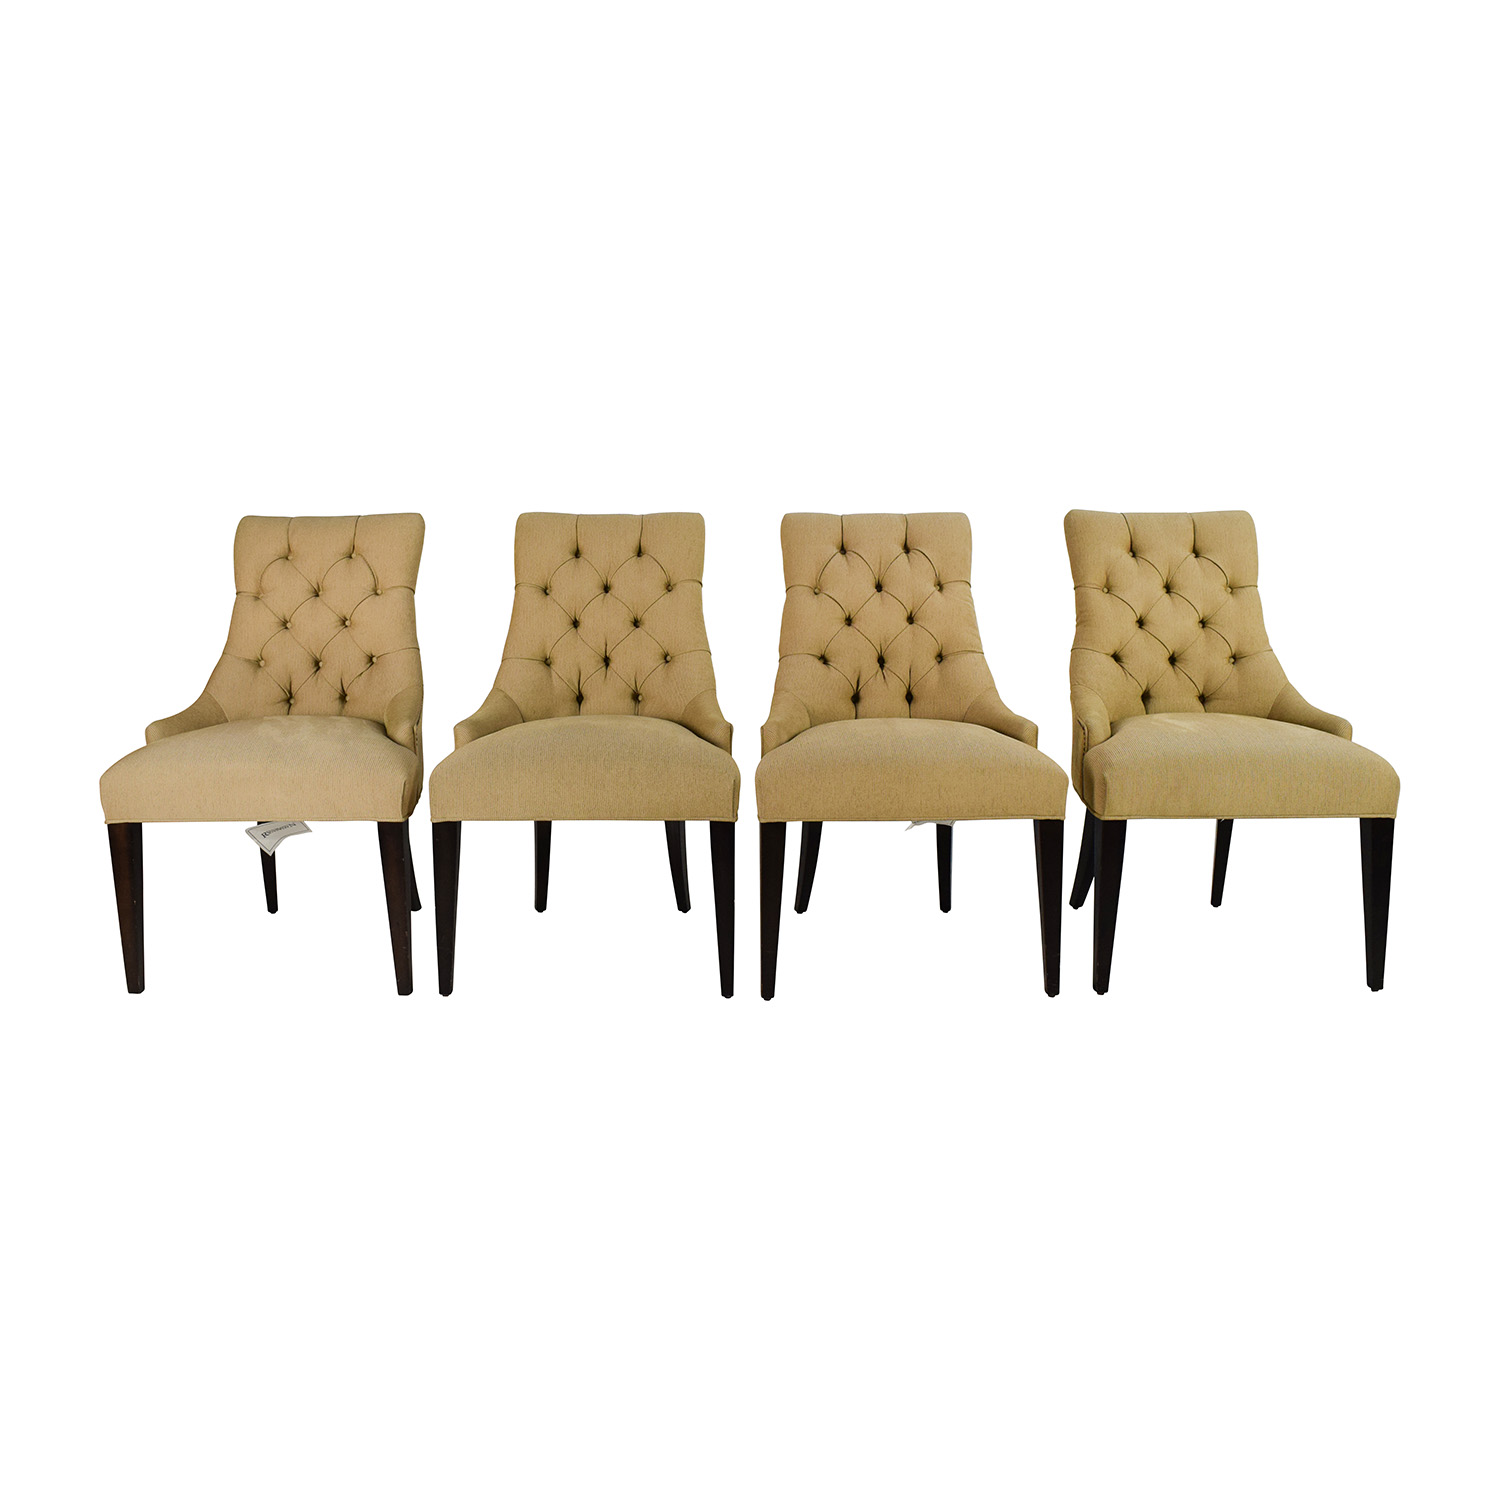 Restoration Hardware Restoration Hardware Martine Tufted Fabric Armchair Set on sale